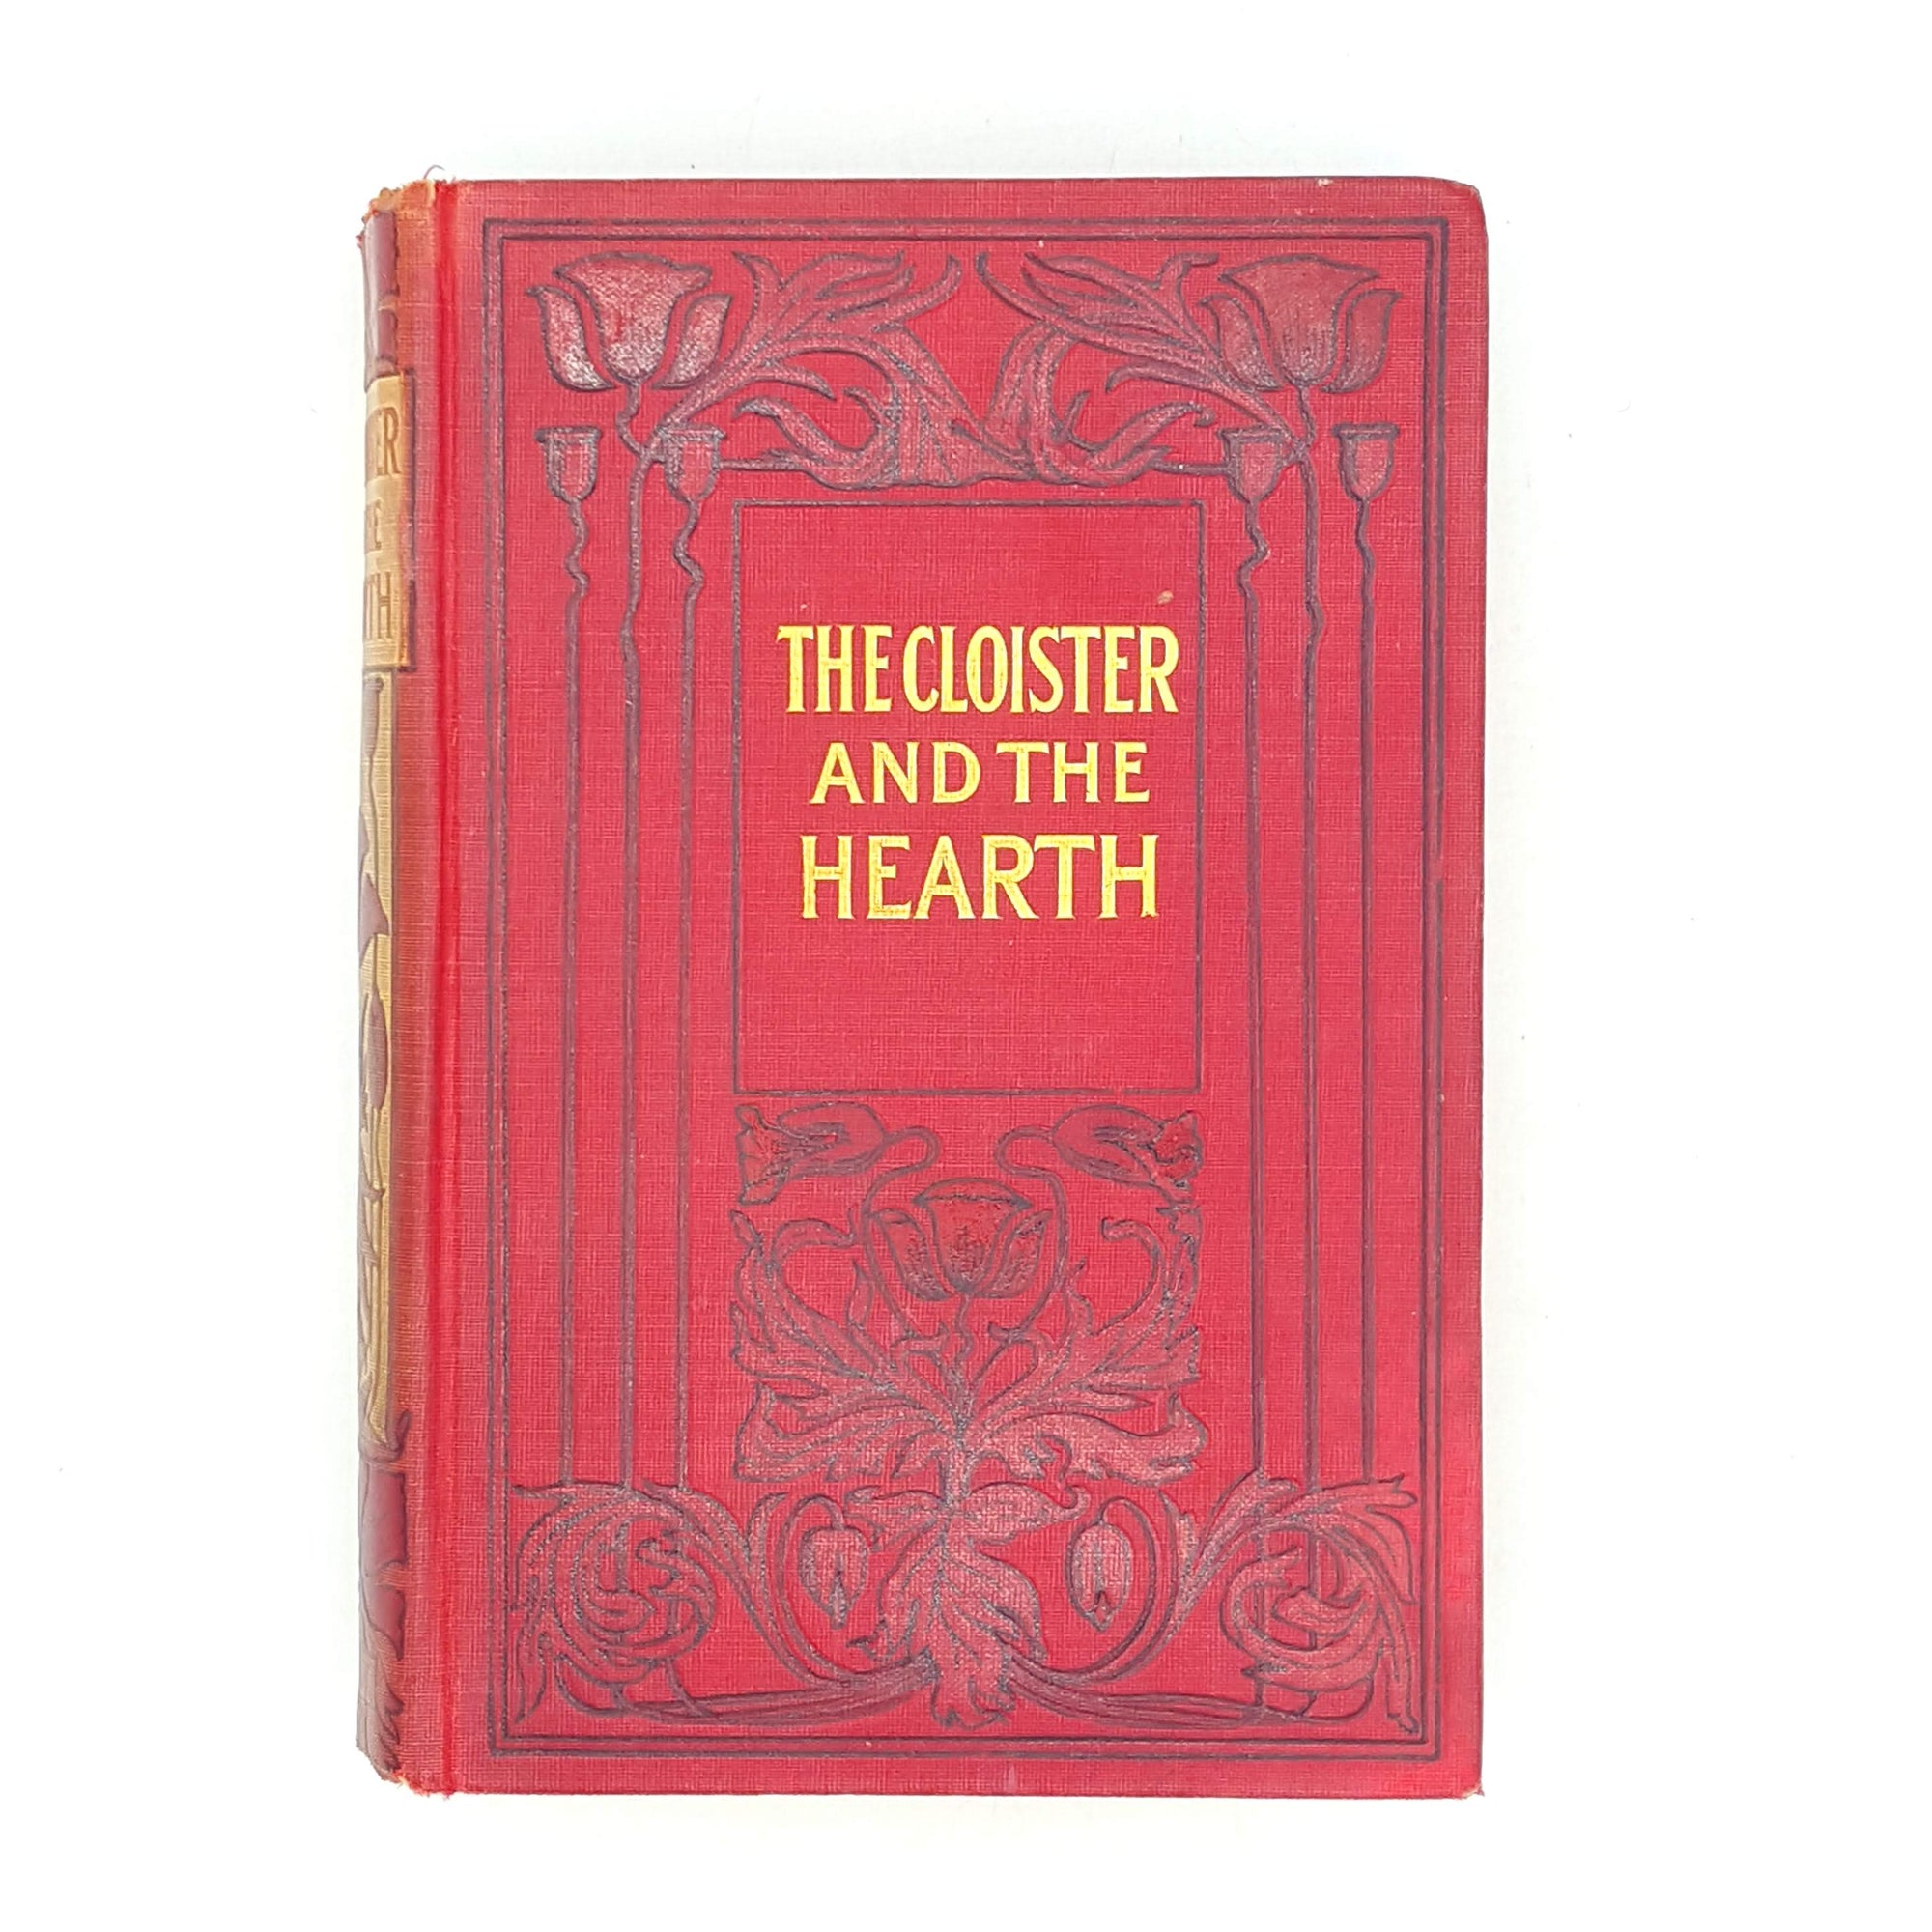 floral-vintage-books-thrift-decorative-cloister-and-the-hearth-patterned-red-antique-old-charles-reade-1908-country-house-library-